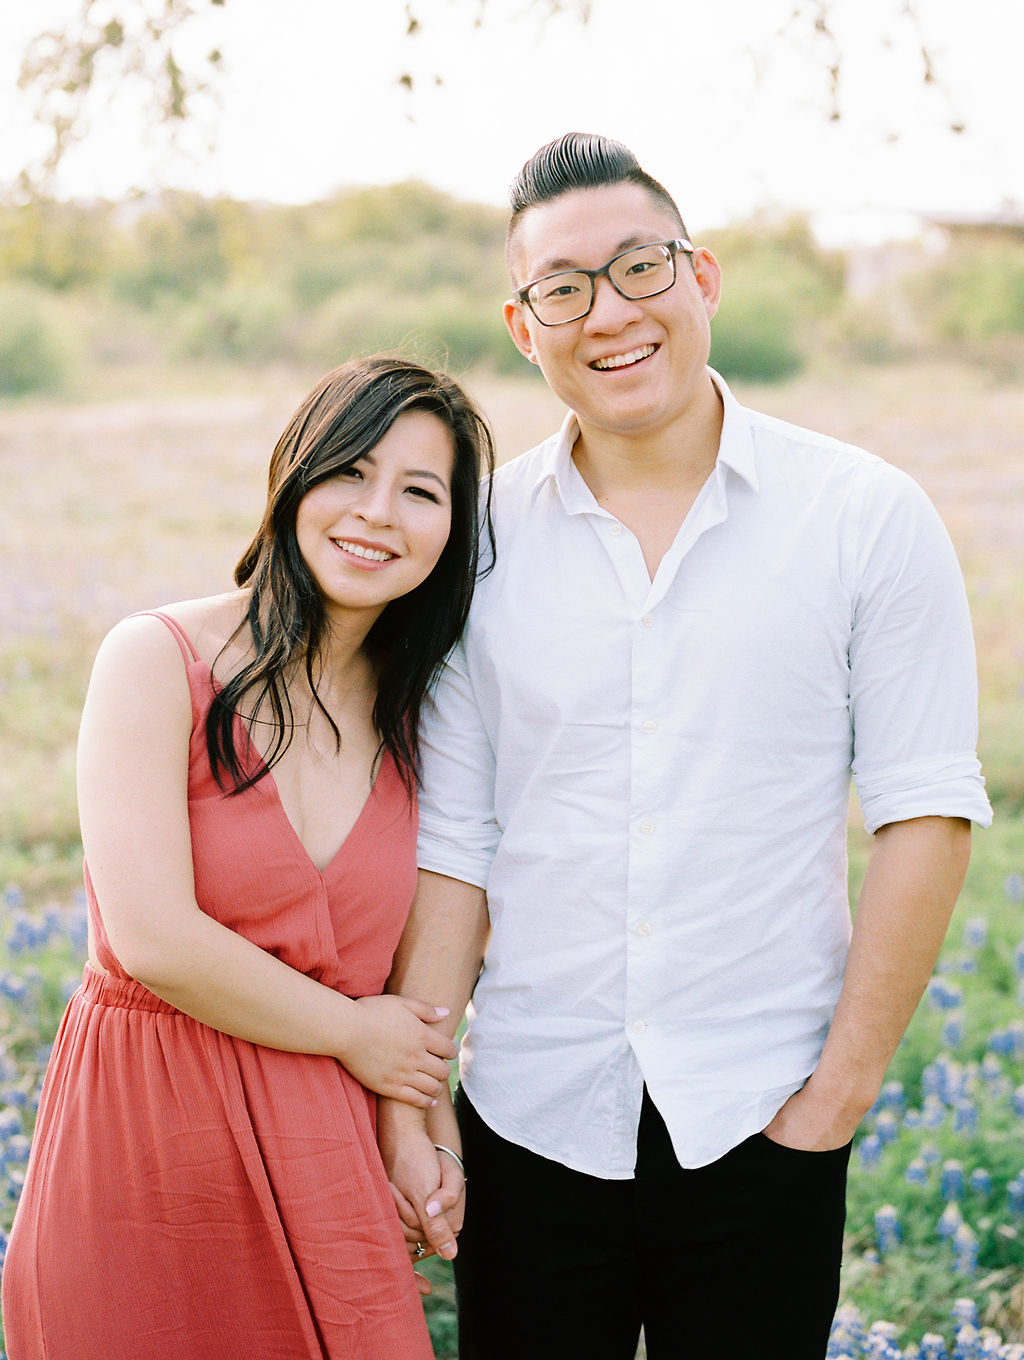 Austin-Film-Wedding-Photographer-Engagement-Session-Fun-adventure-outdoor-fine-art-1.jpg